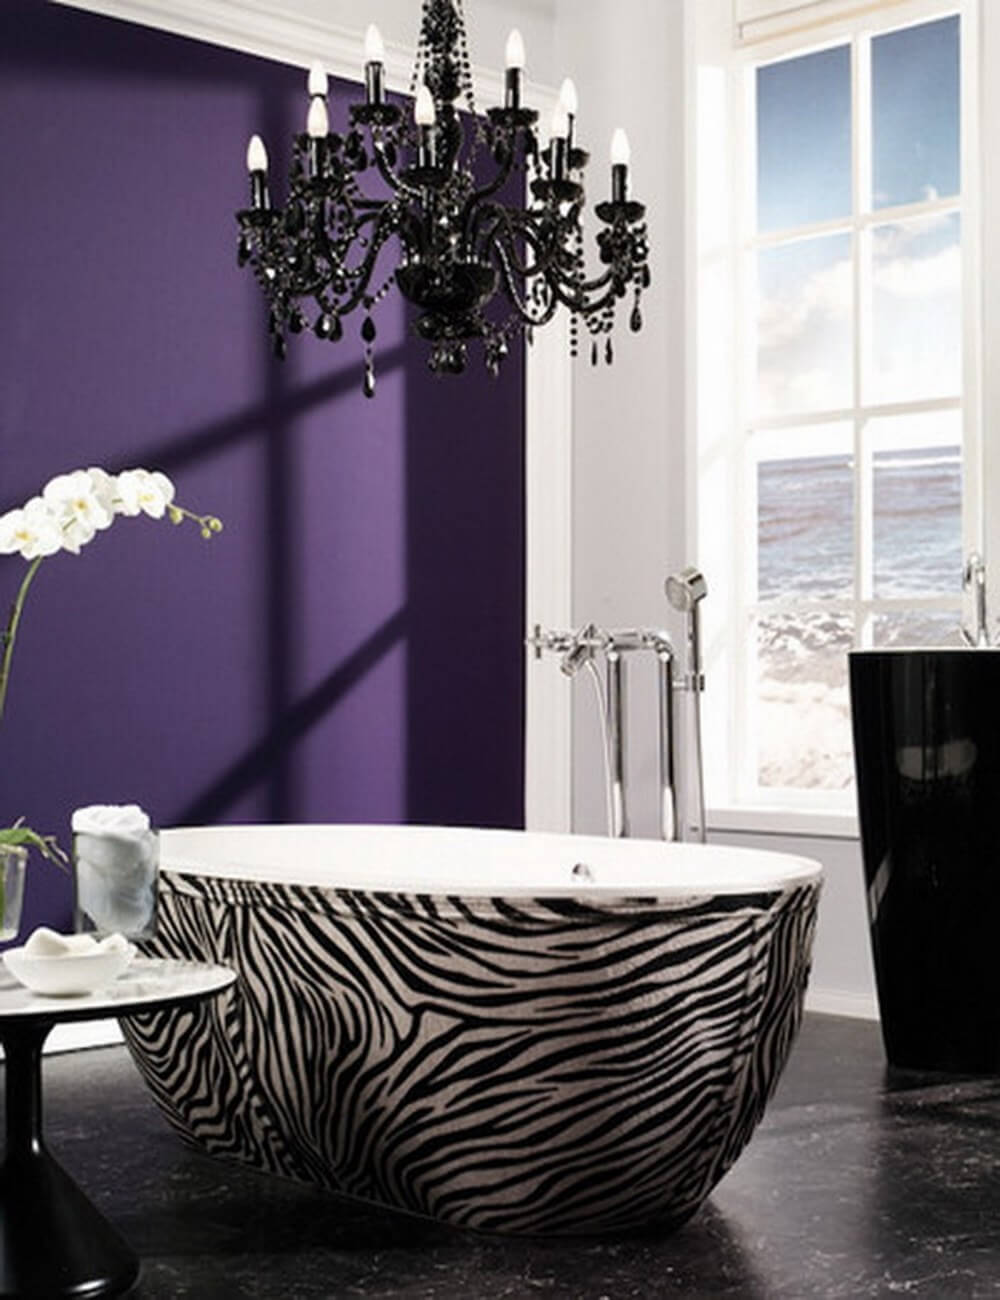 The Most Amazing Bathtubs in the World Zebra Print Interior Design Ideas 41